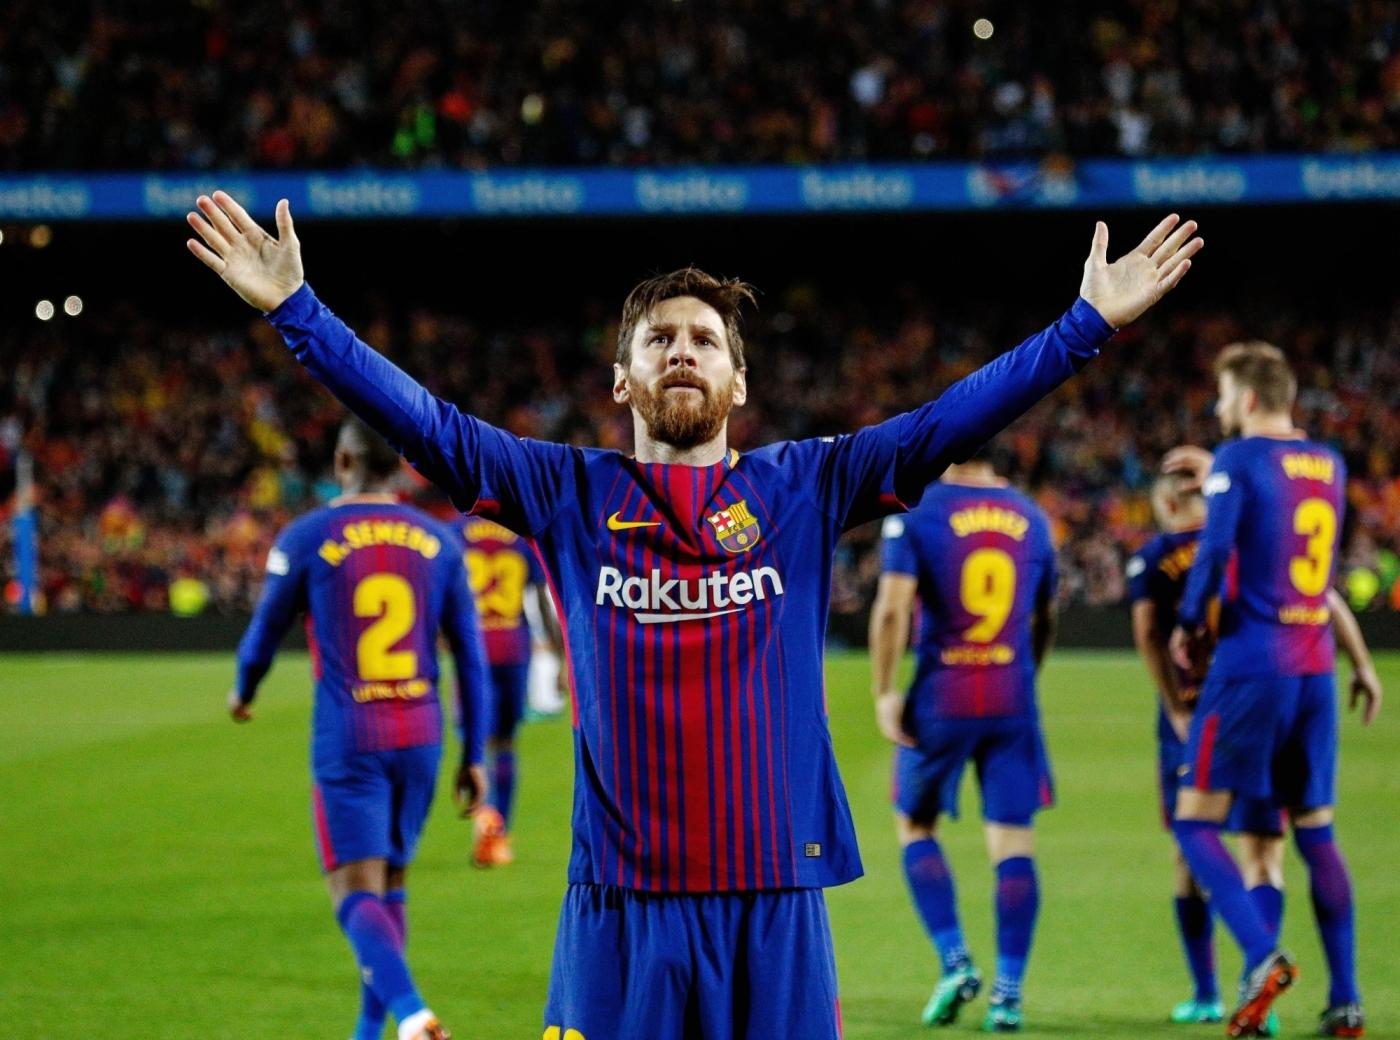 BARCELONA, May 7, 2018 (Xinhua) -- FC Barcelona's Lionel Messi celebrates his goal during a Spanish league match between FC Barcelona and Real Madrid in Barcelona, Spain, on May 6, 2018. The match ended 2-2. (Xinhua/Joan Gosa/IANS) by .